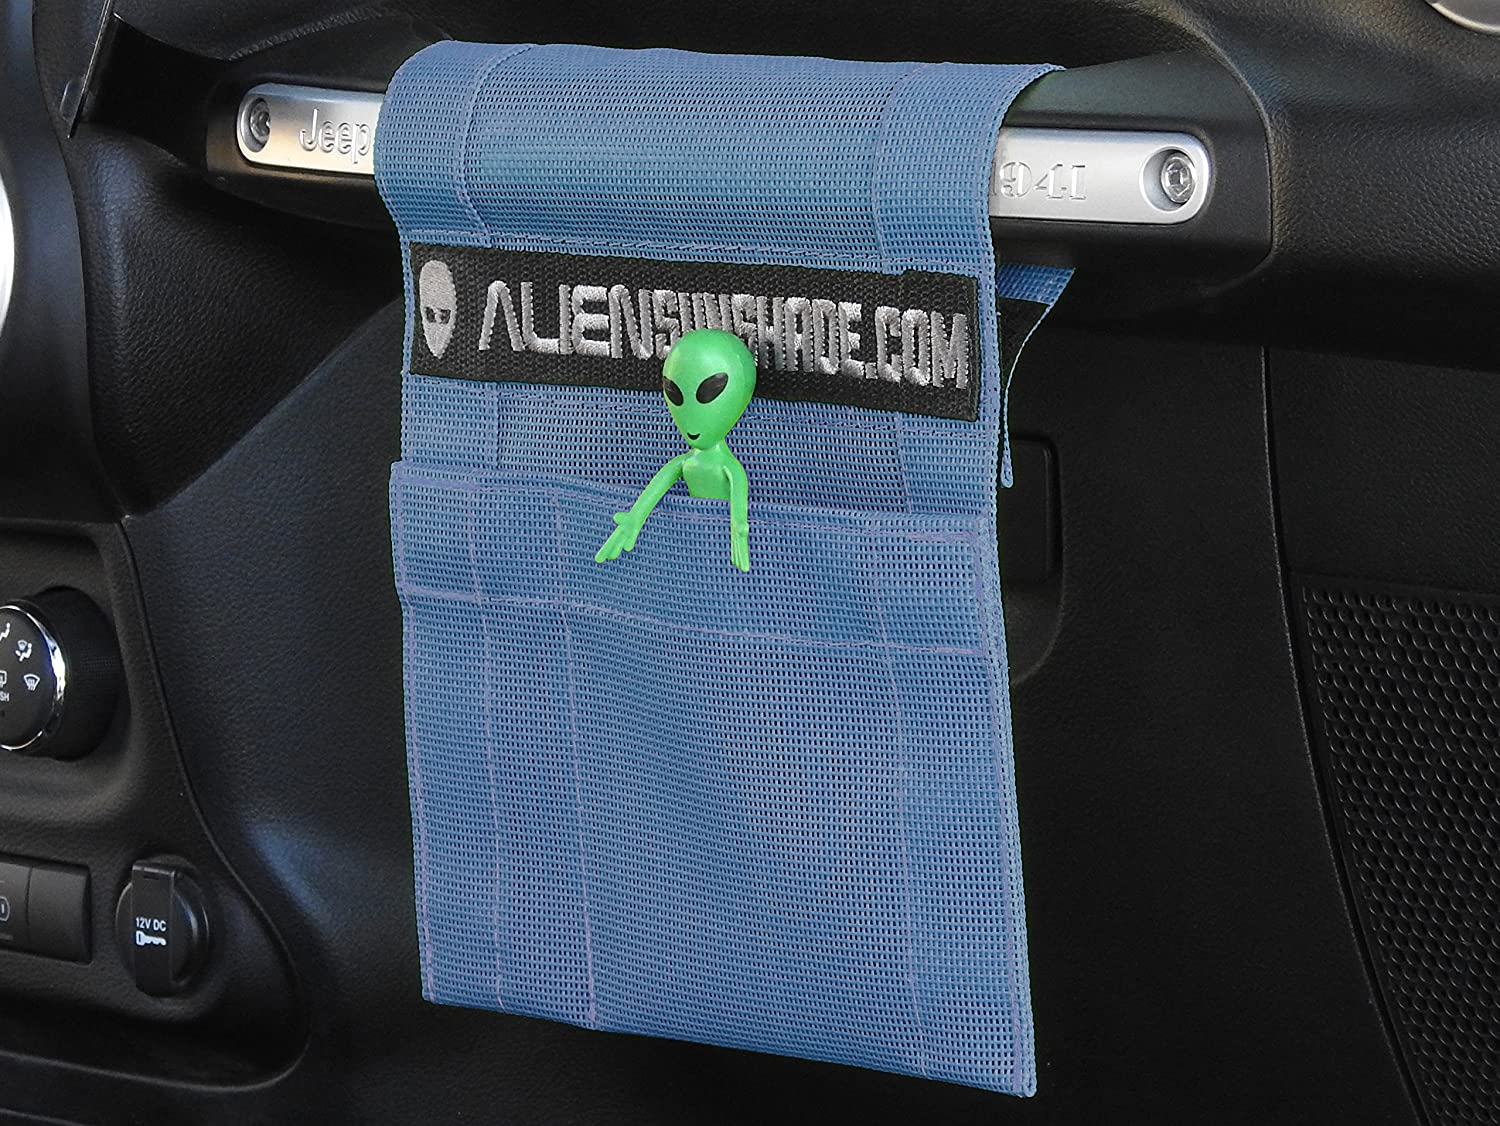 ALIEN SUNSHADE Jeep Wrangler TrailPouch Multi-Purpose Mesh Storage Pouch Organizer with 10 Year Warranty Blue